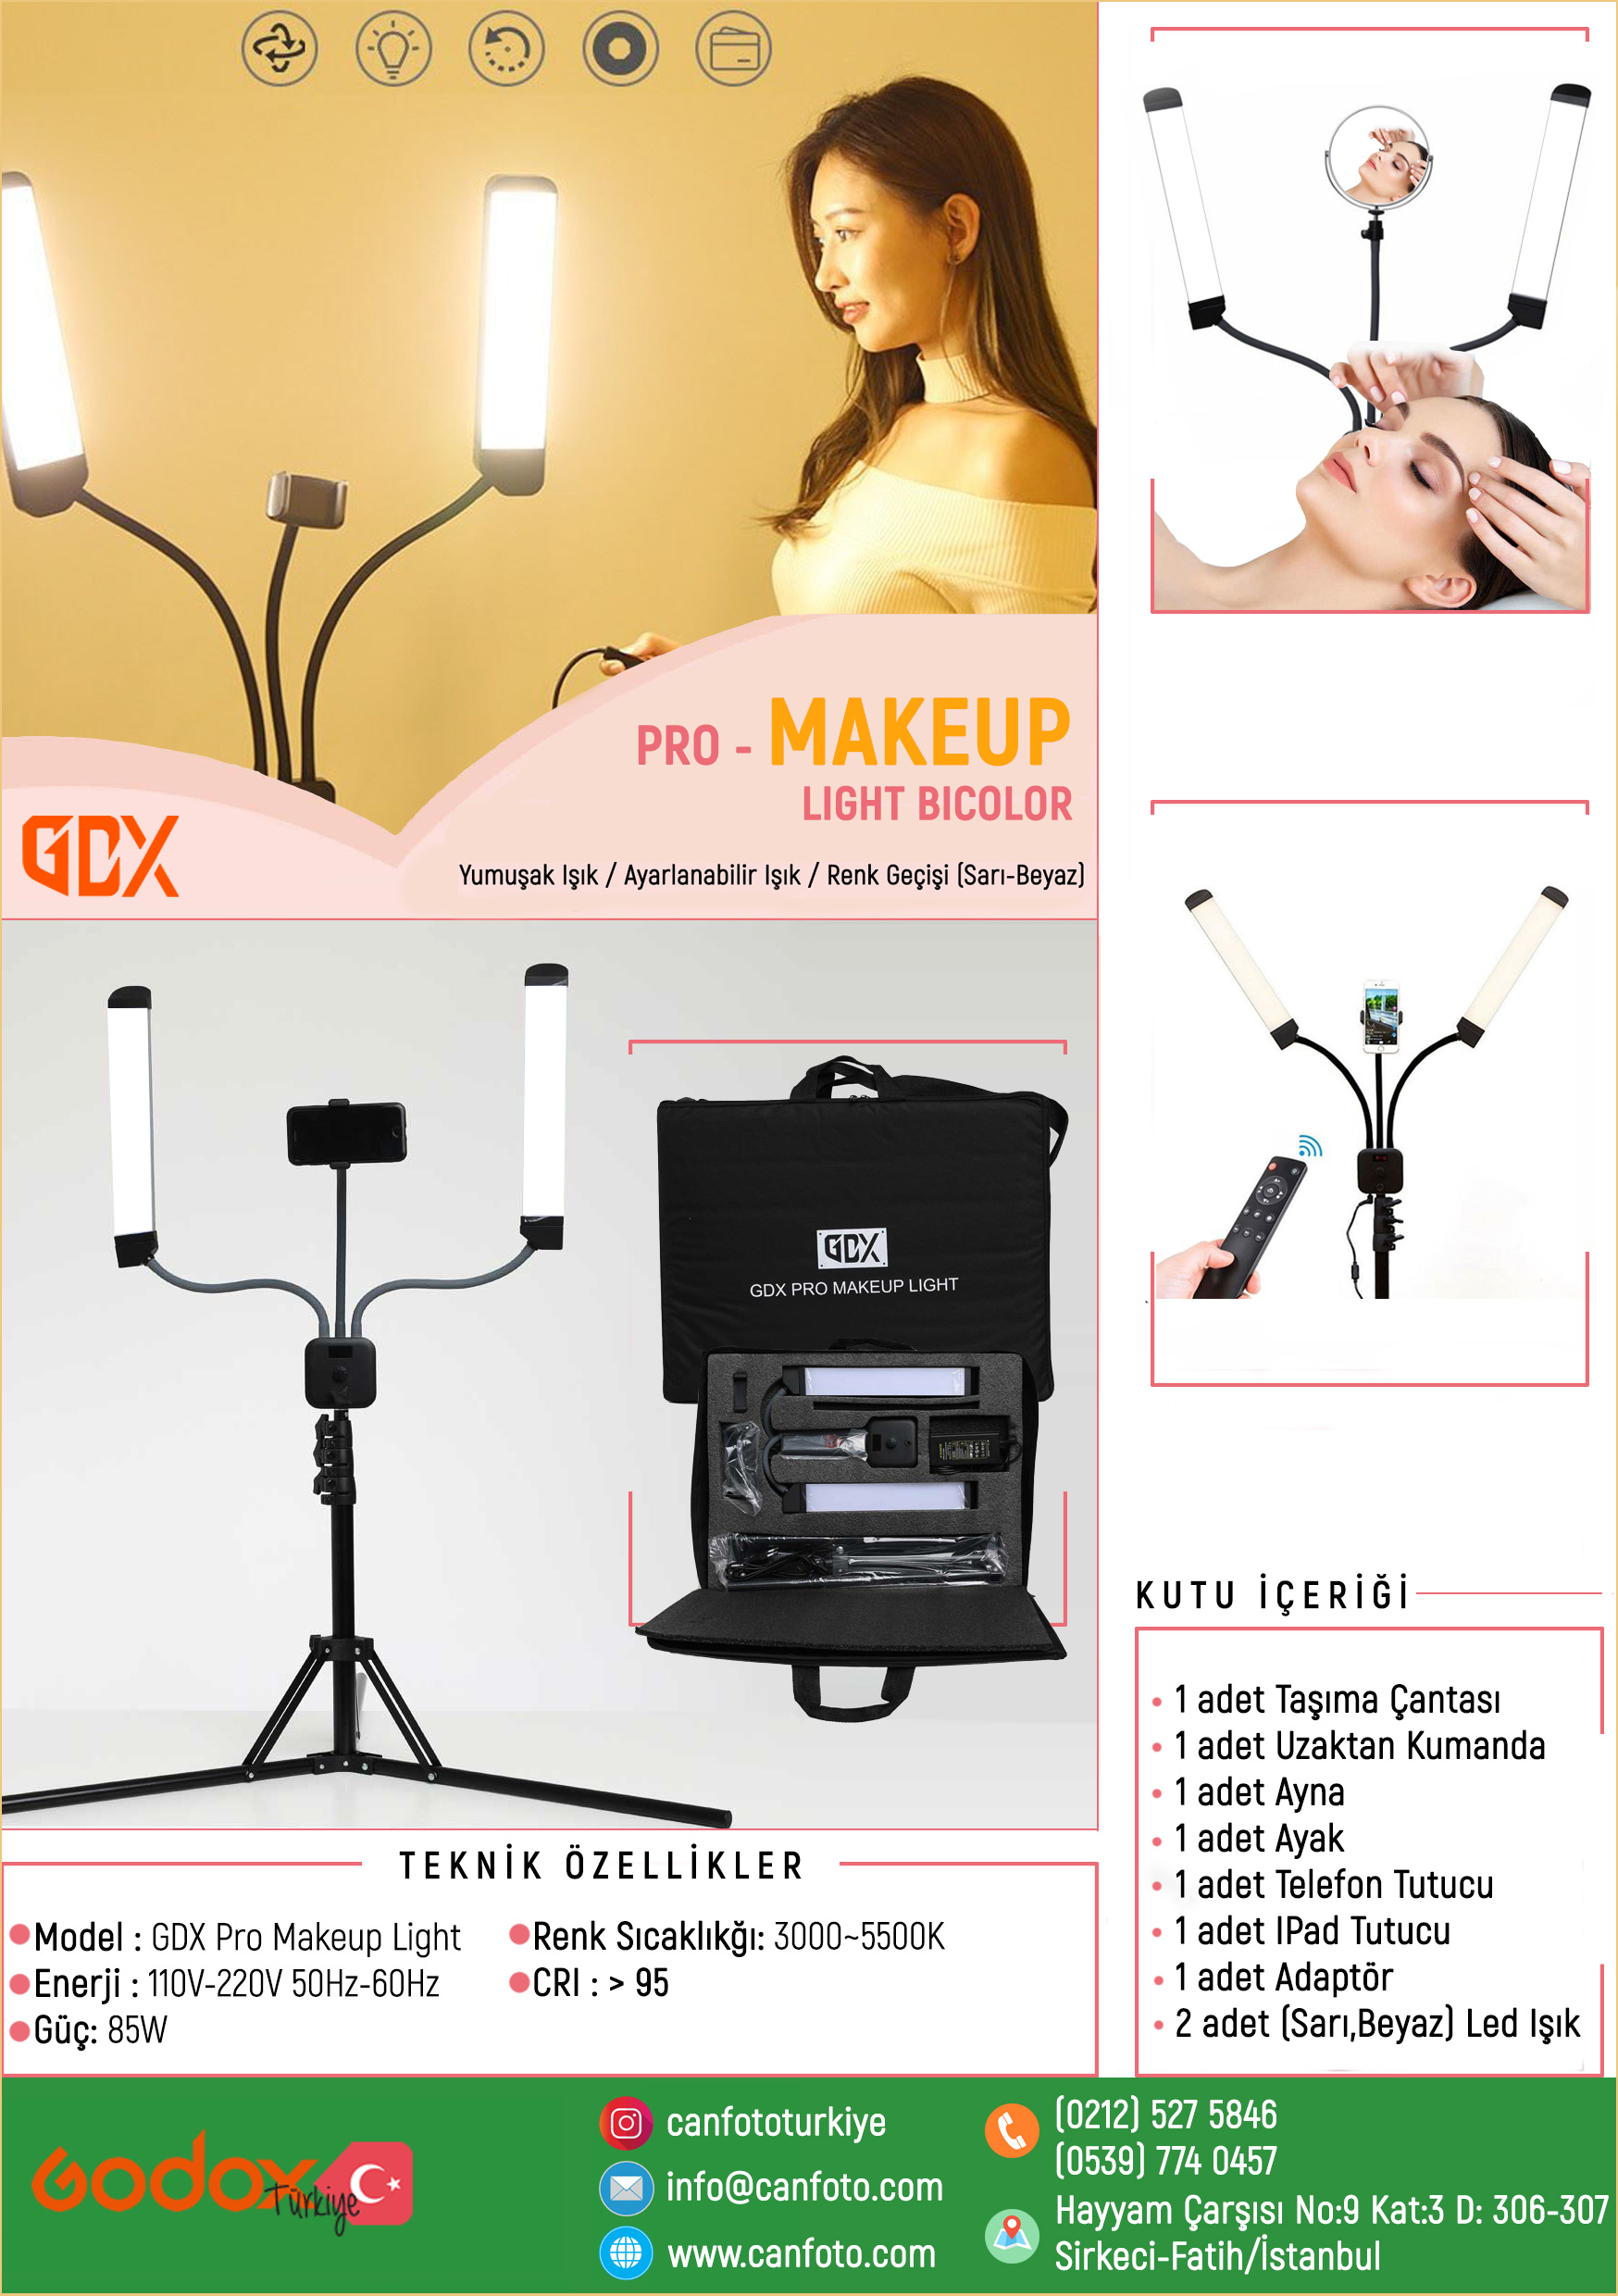 GDX PRO MAKEUP LIGHT, BICOLOR, DÖVME, MAKYAJ LED IŞIK